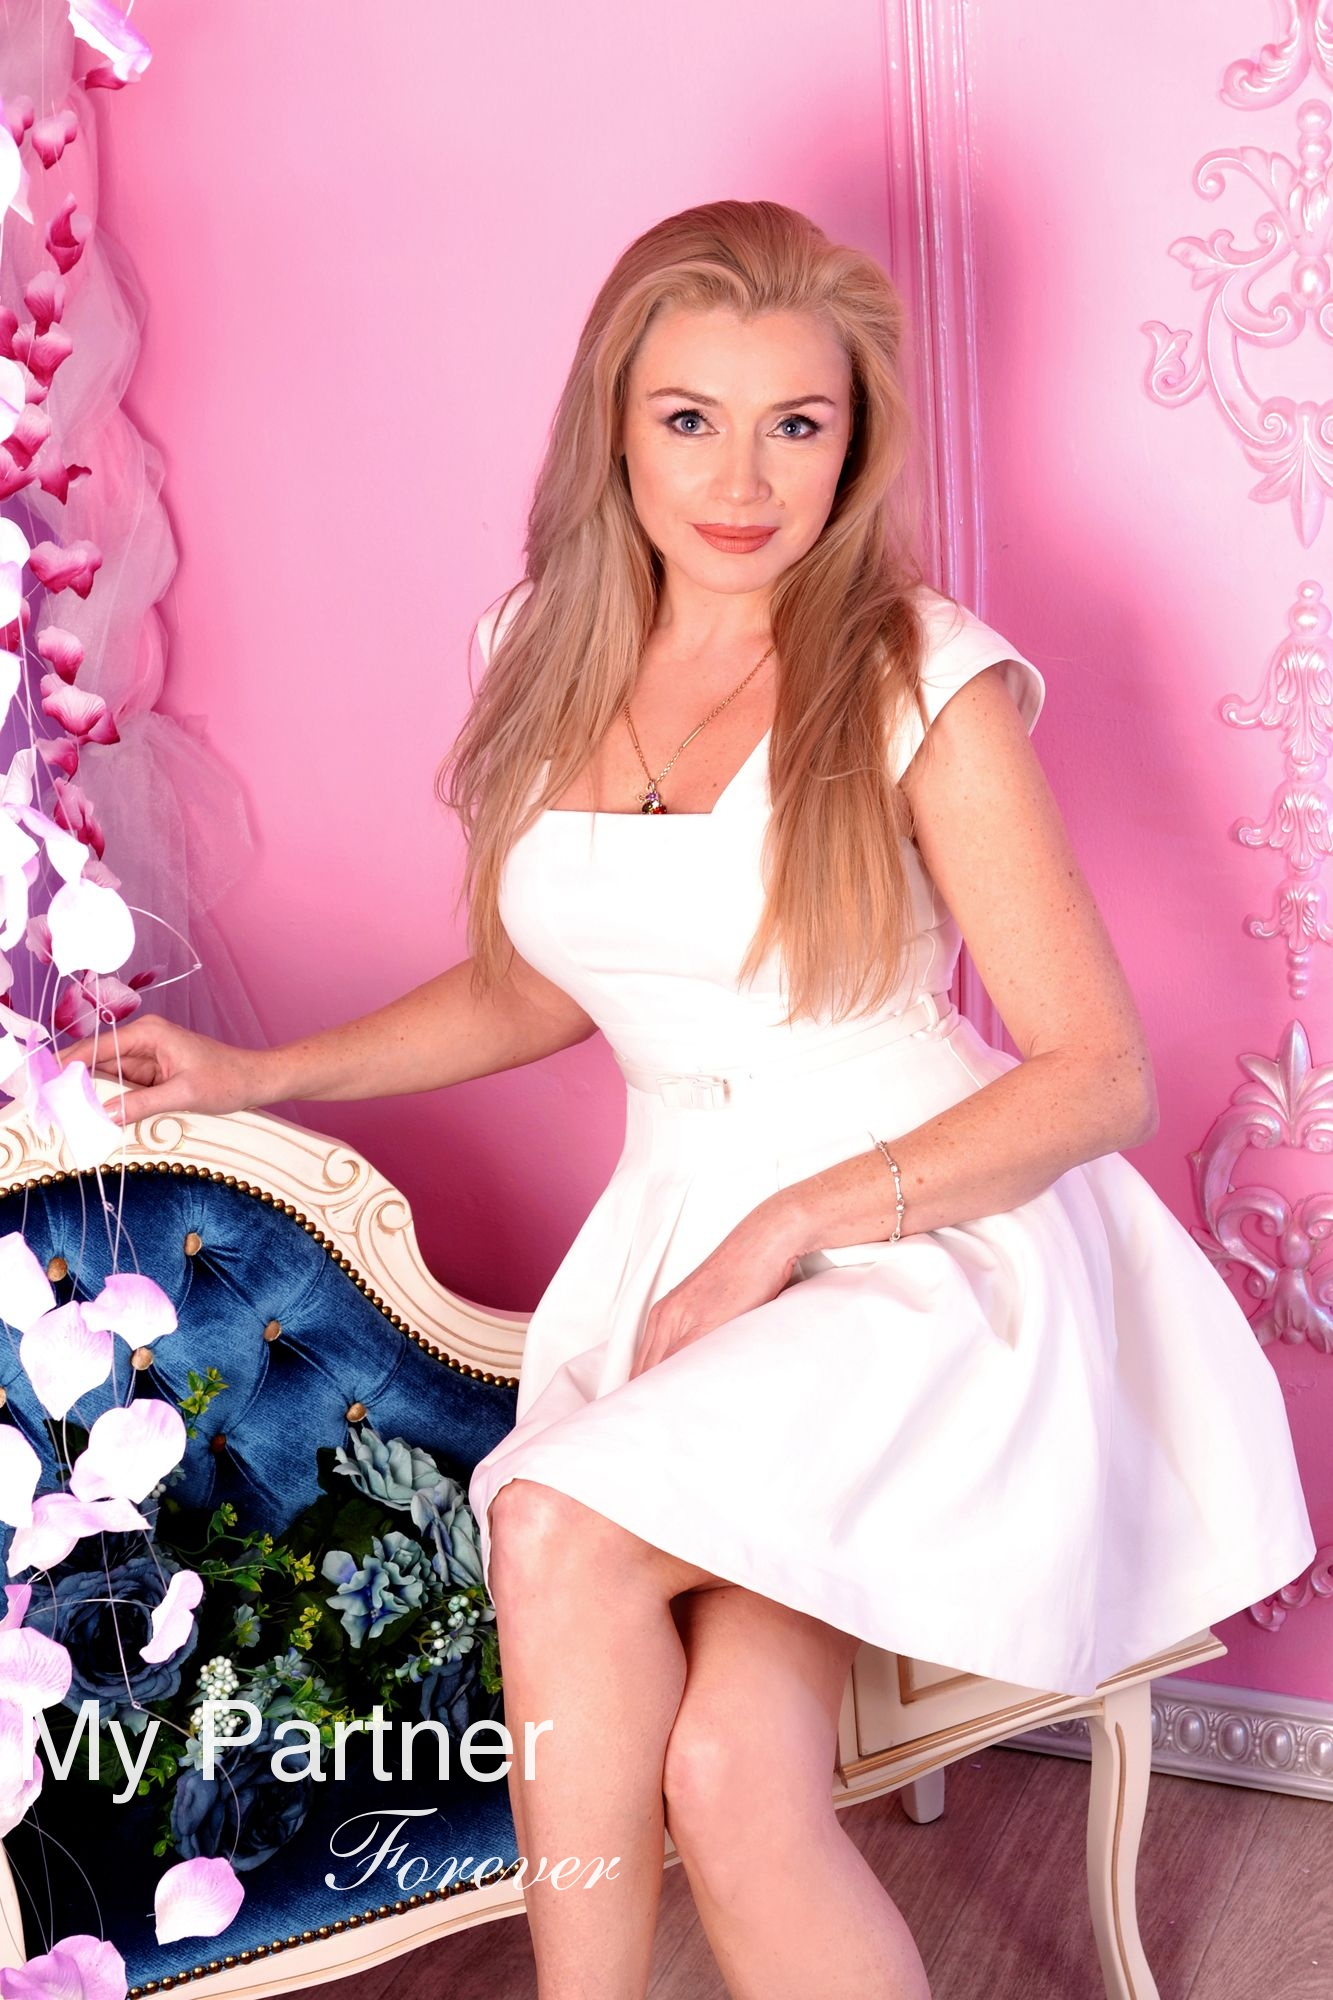 Datingsite to Meet Pretty Ukrainian Girl Oksana from Kharkov, Ukraine